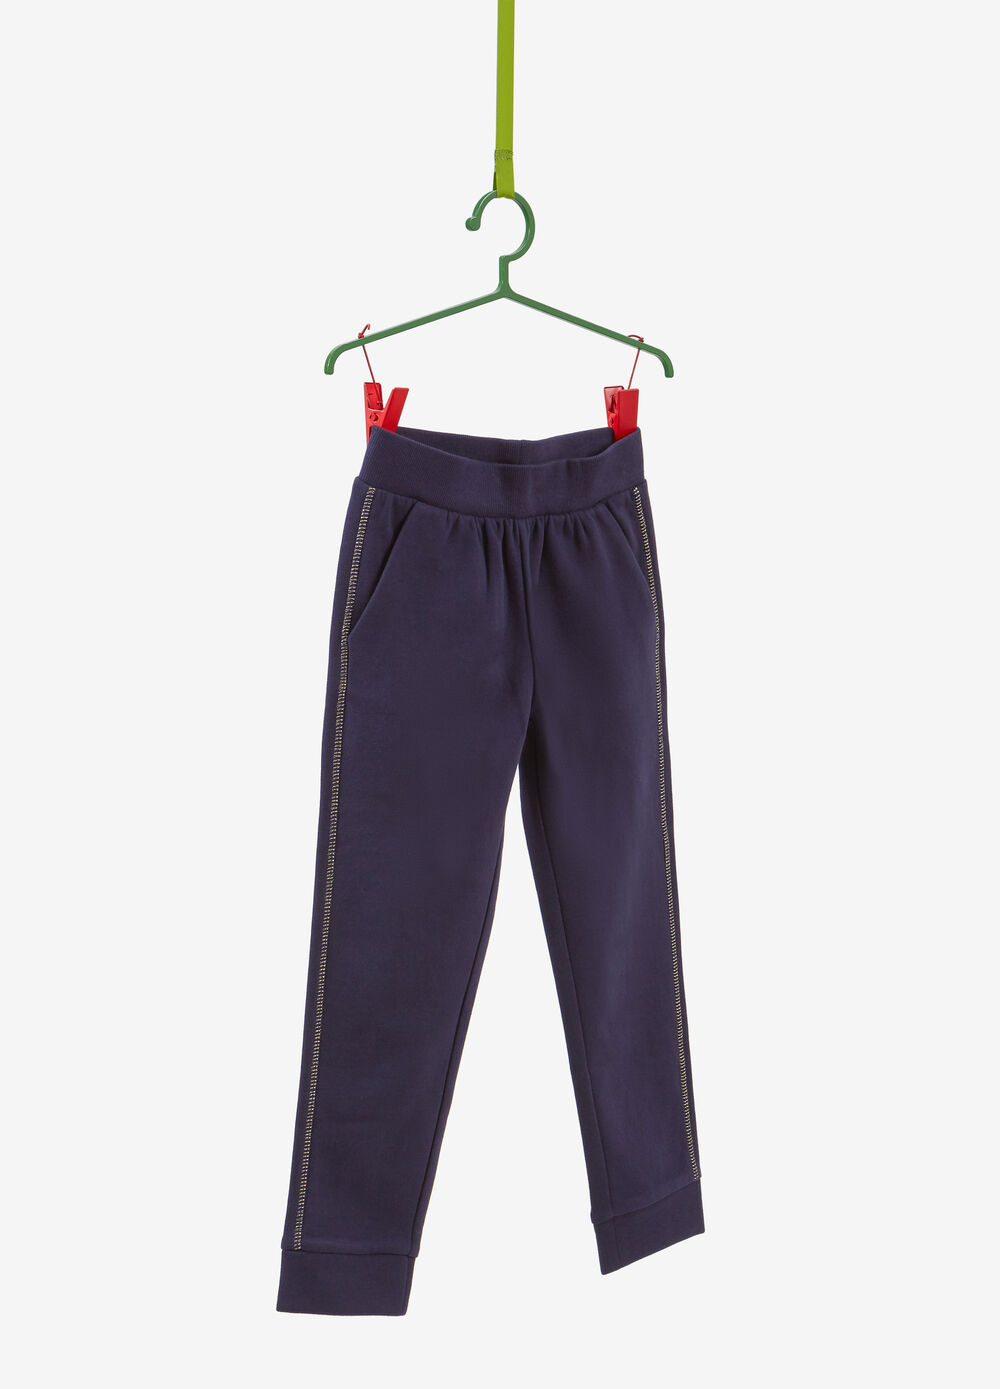 Cotton joggers with contrasting colour stitching